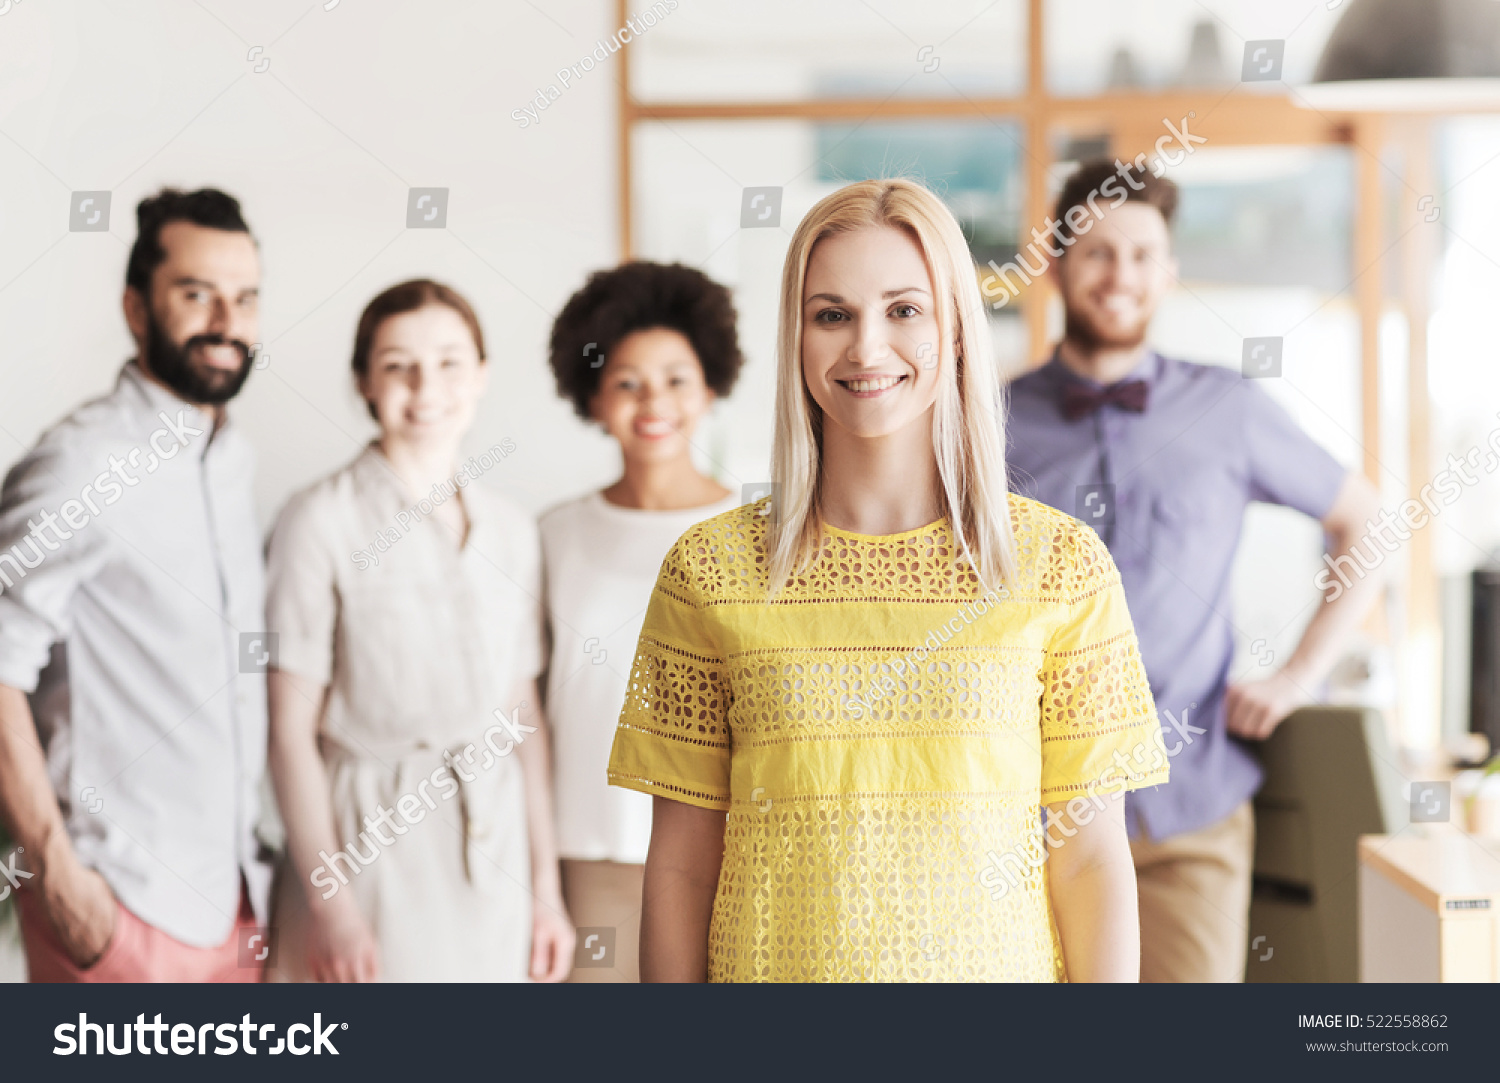 business startup people and teamwork concept happy young woman over creative team in office